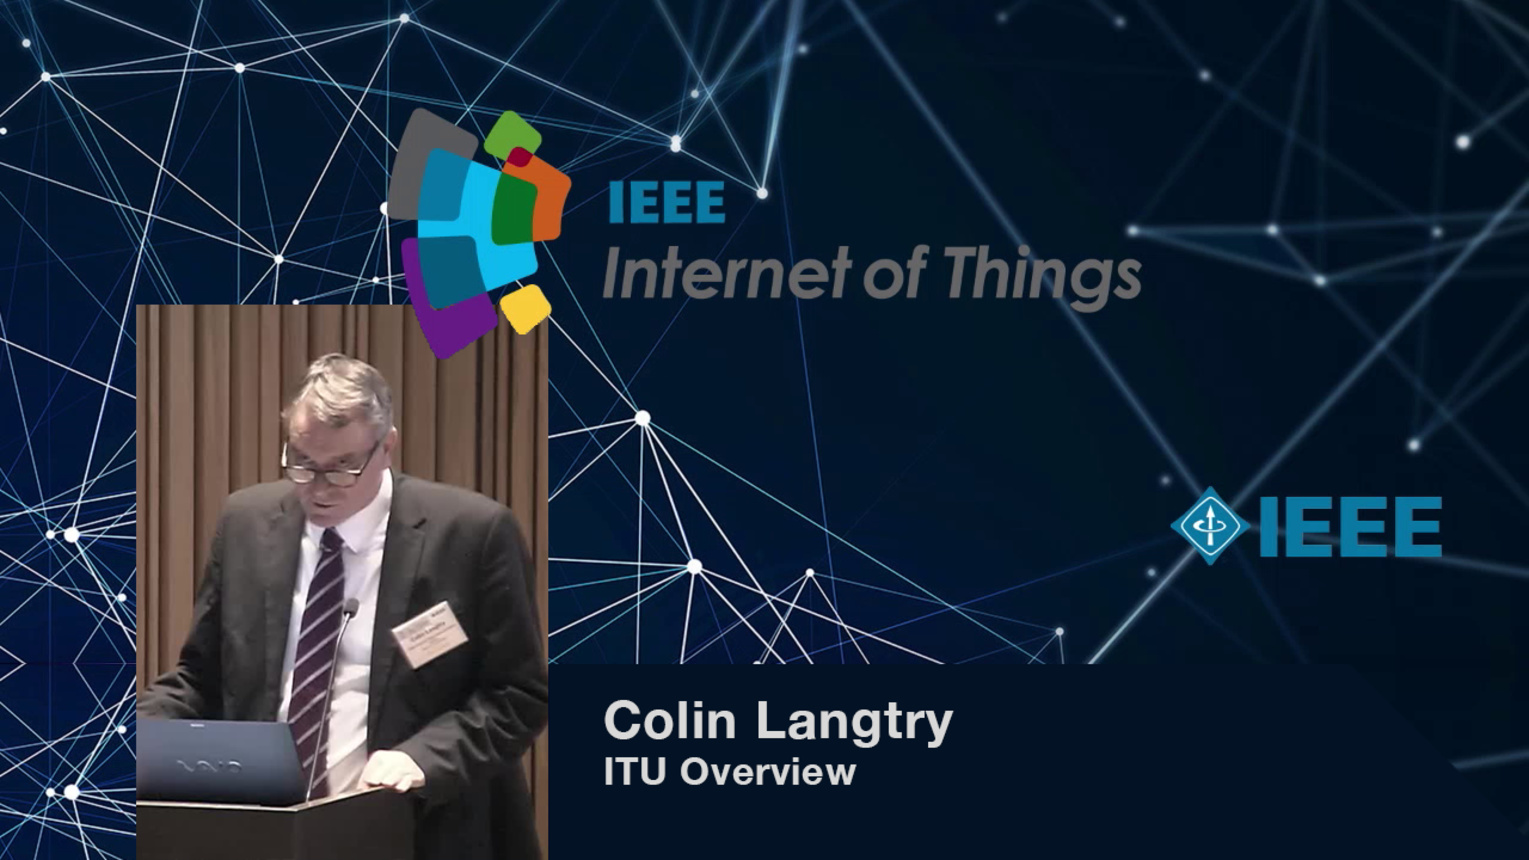 Colin Langtry: ITU Overview - WF-IoT 2015